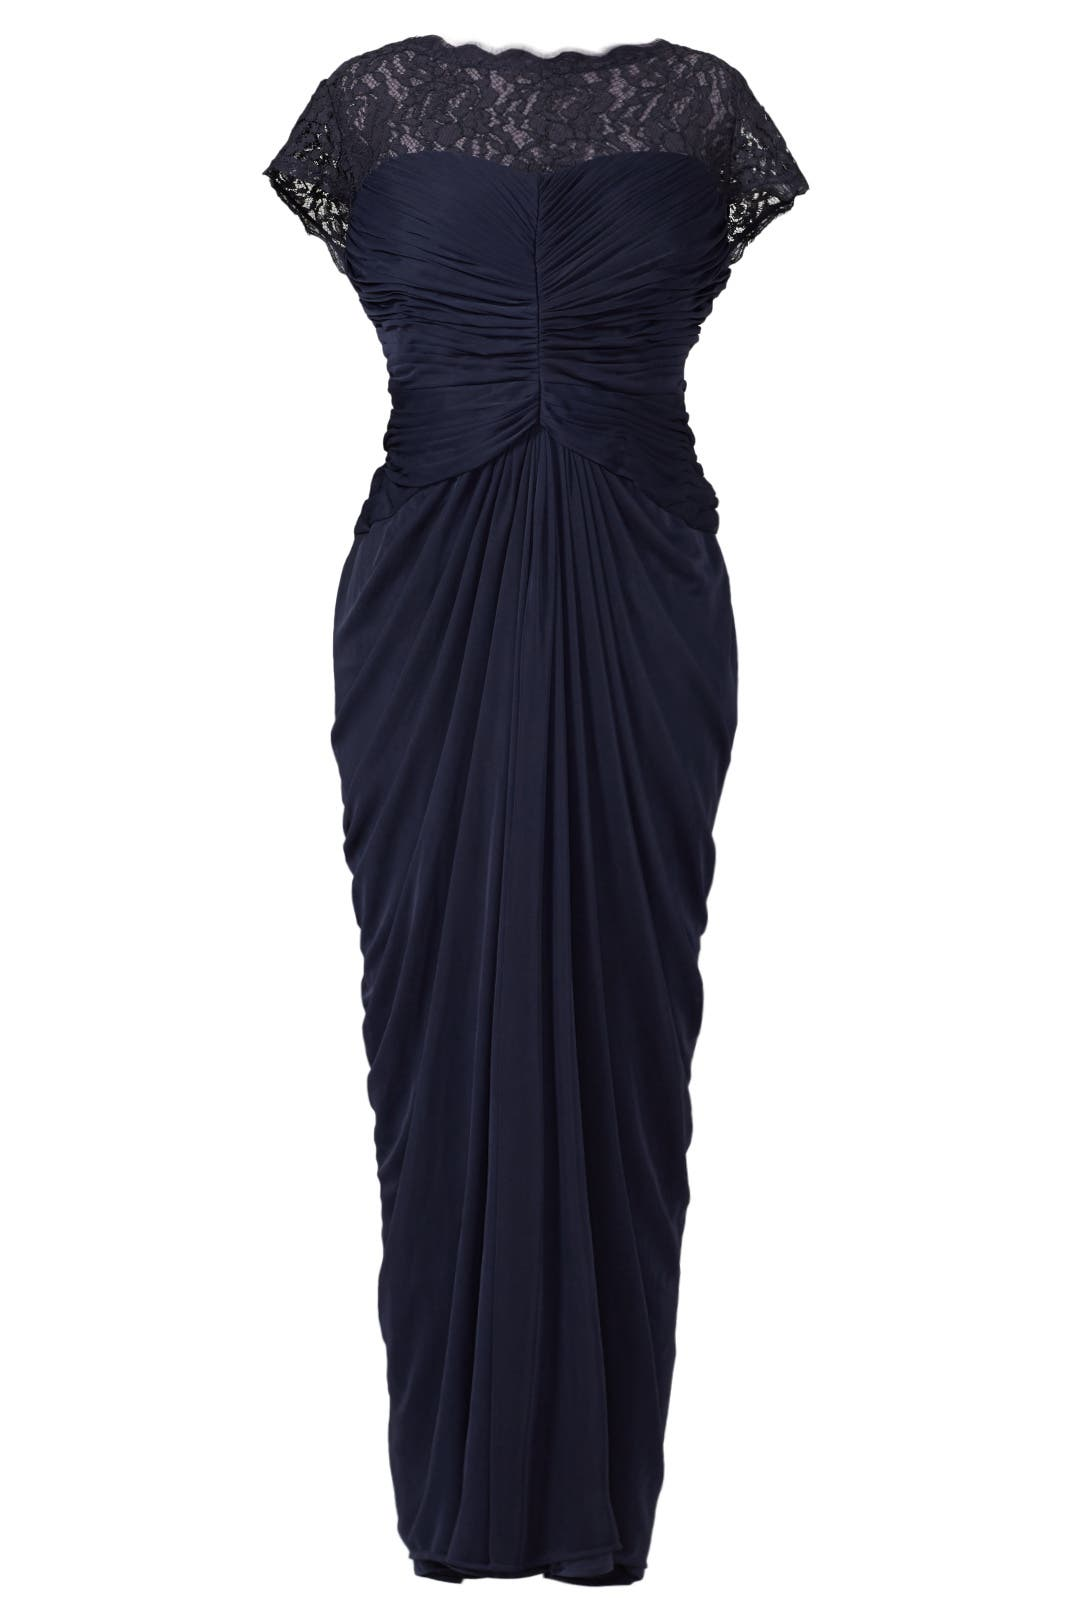 Like a Glove Gown by Adrianna Papell for $72 | Rent the Runway